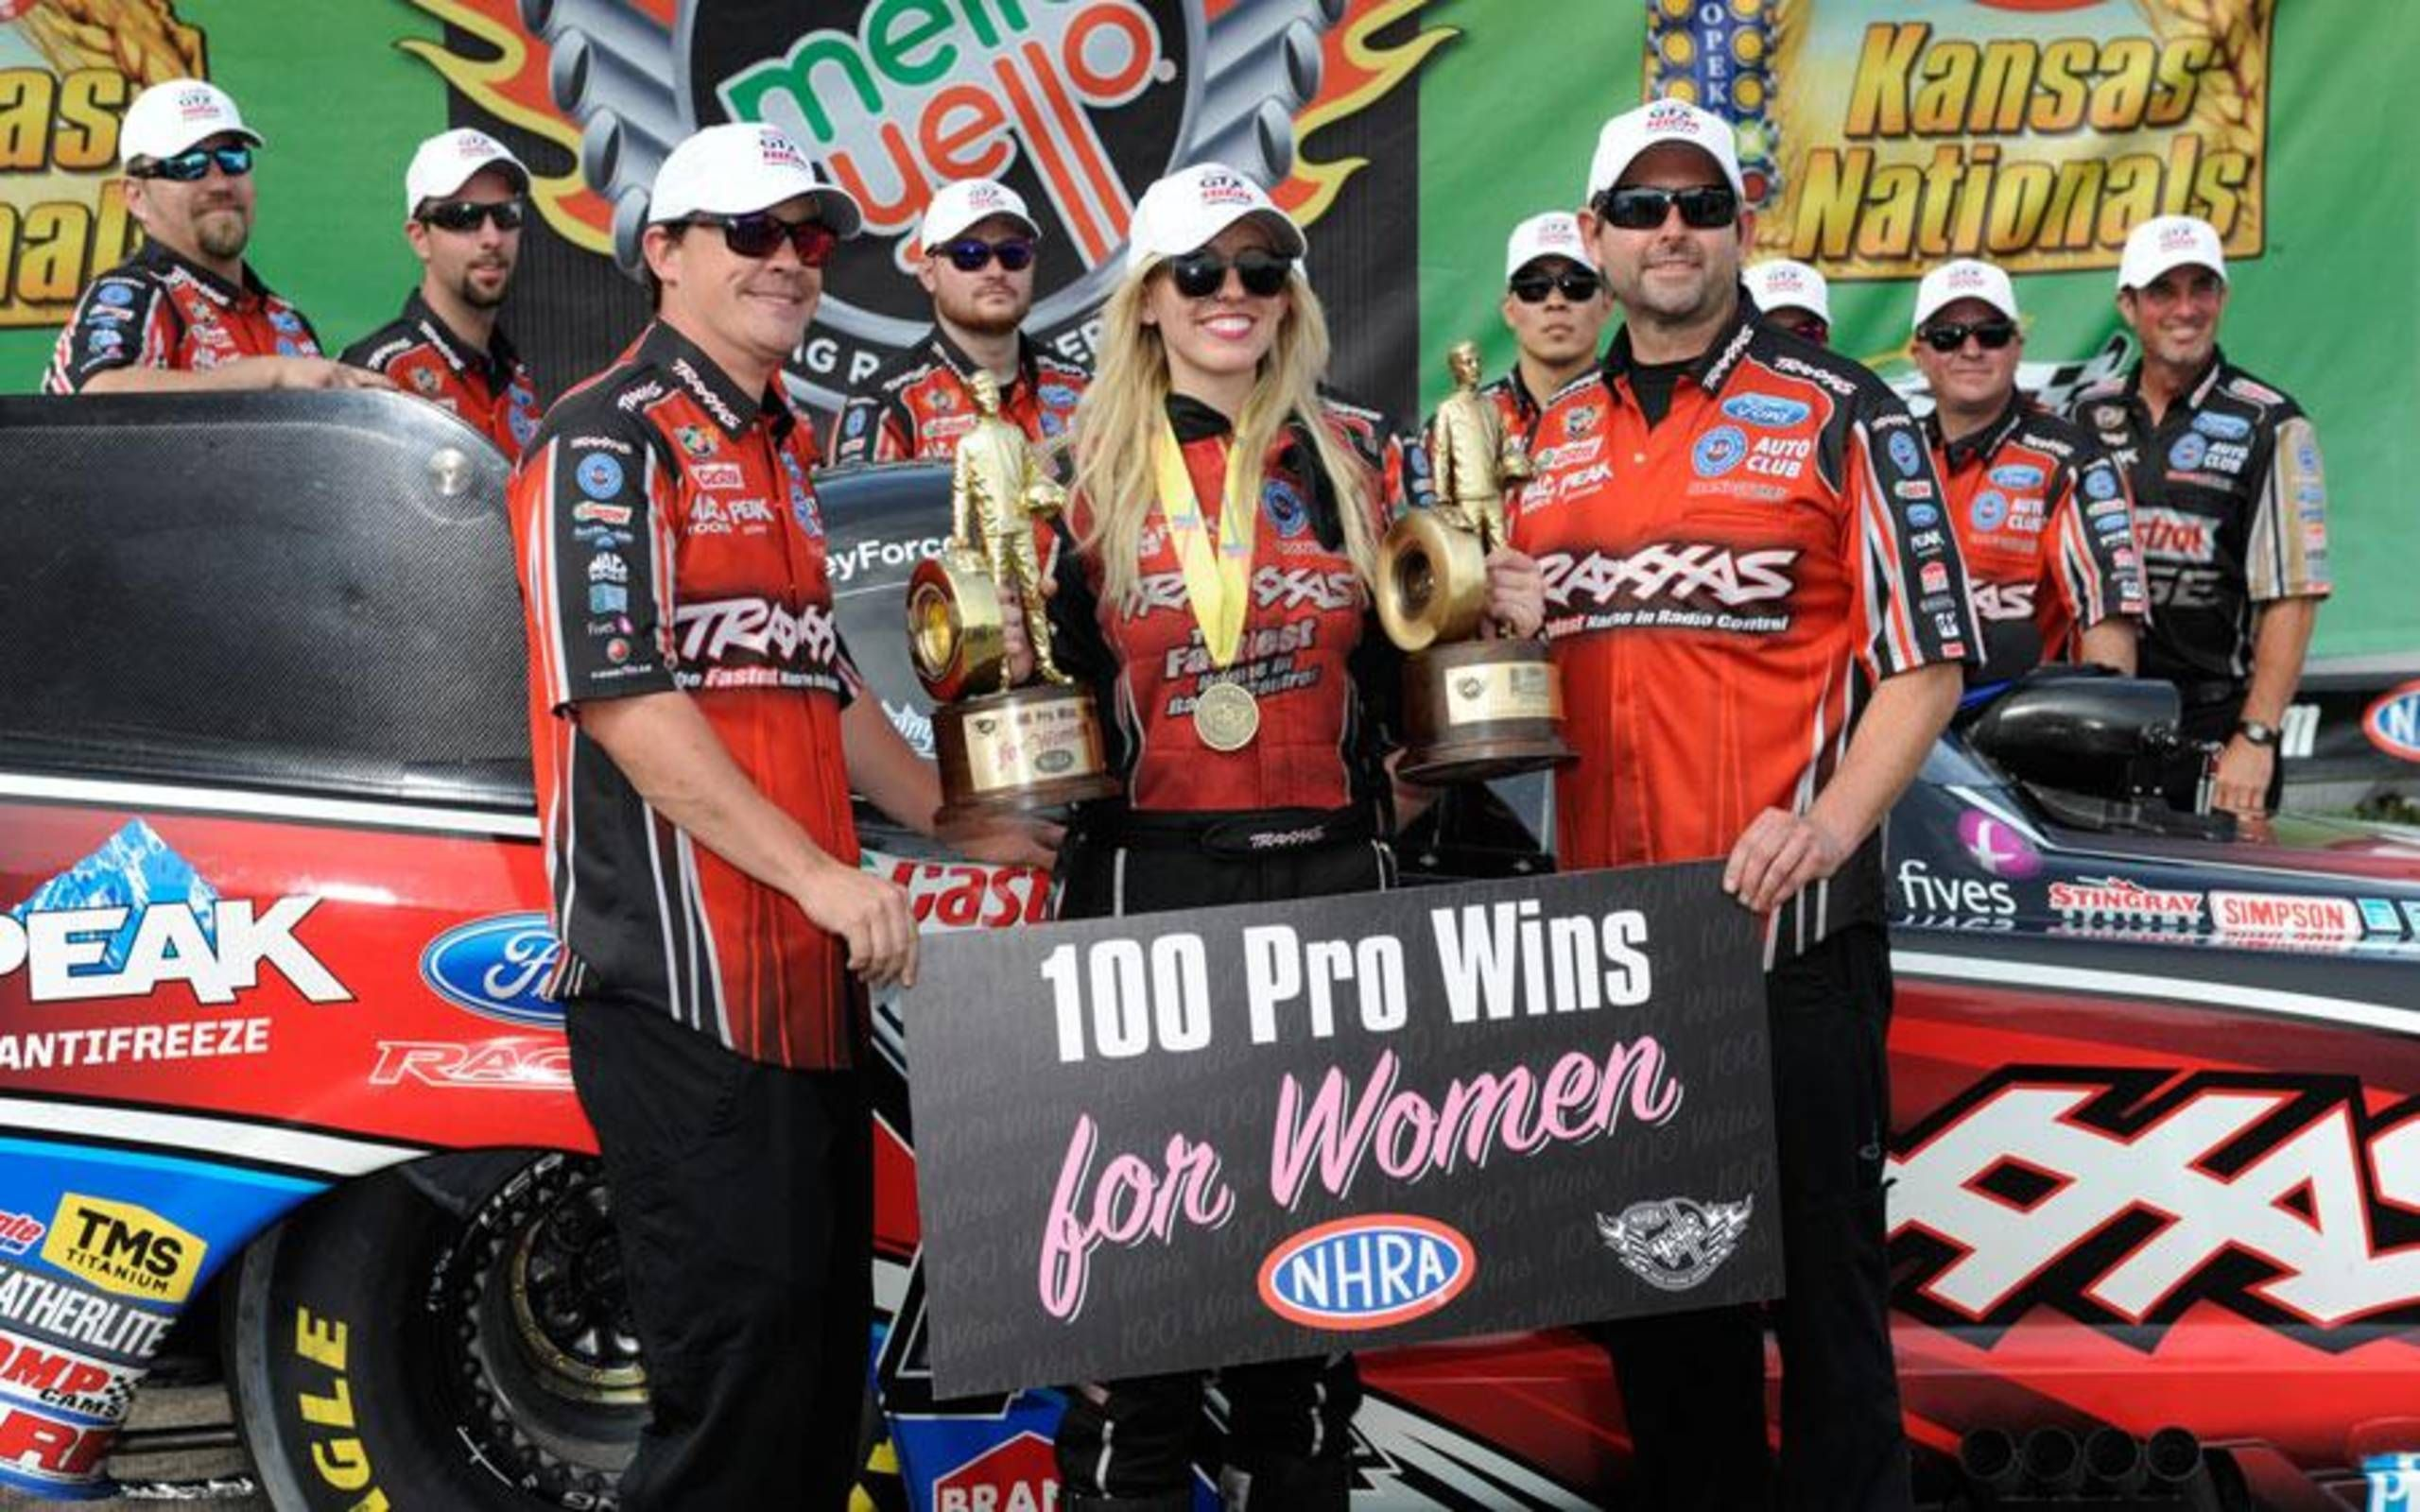 Complete List Of 100 Nhra Wins For Women